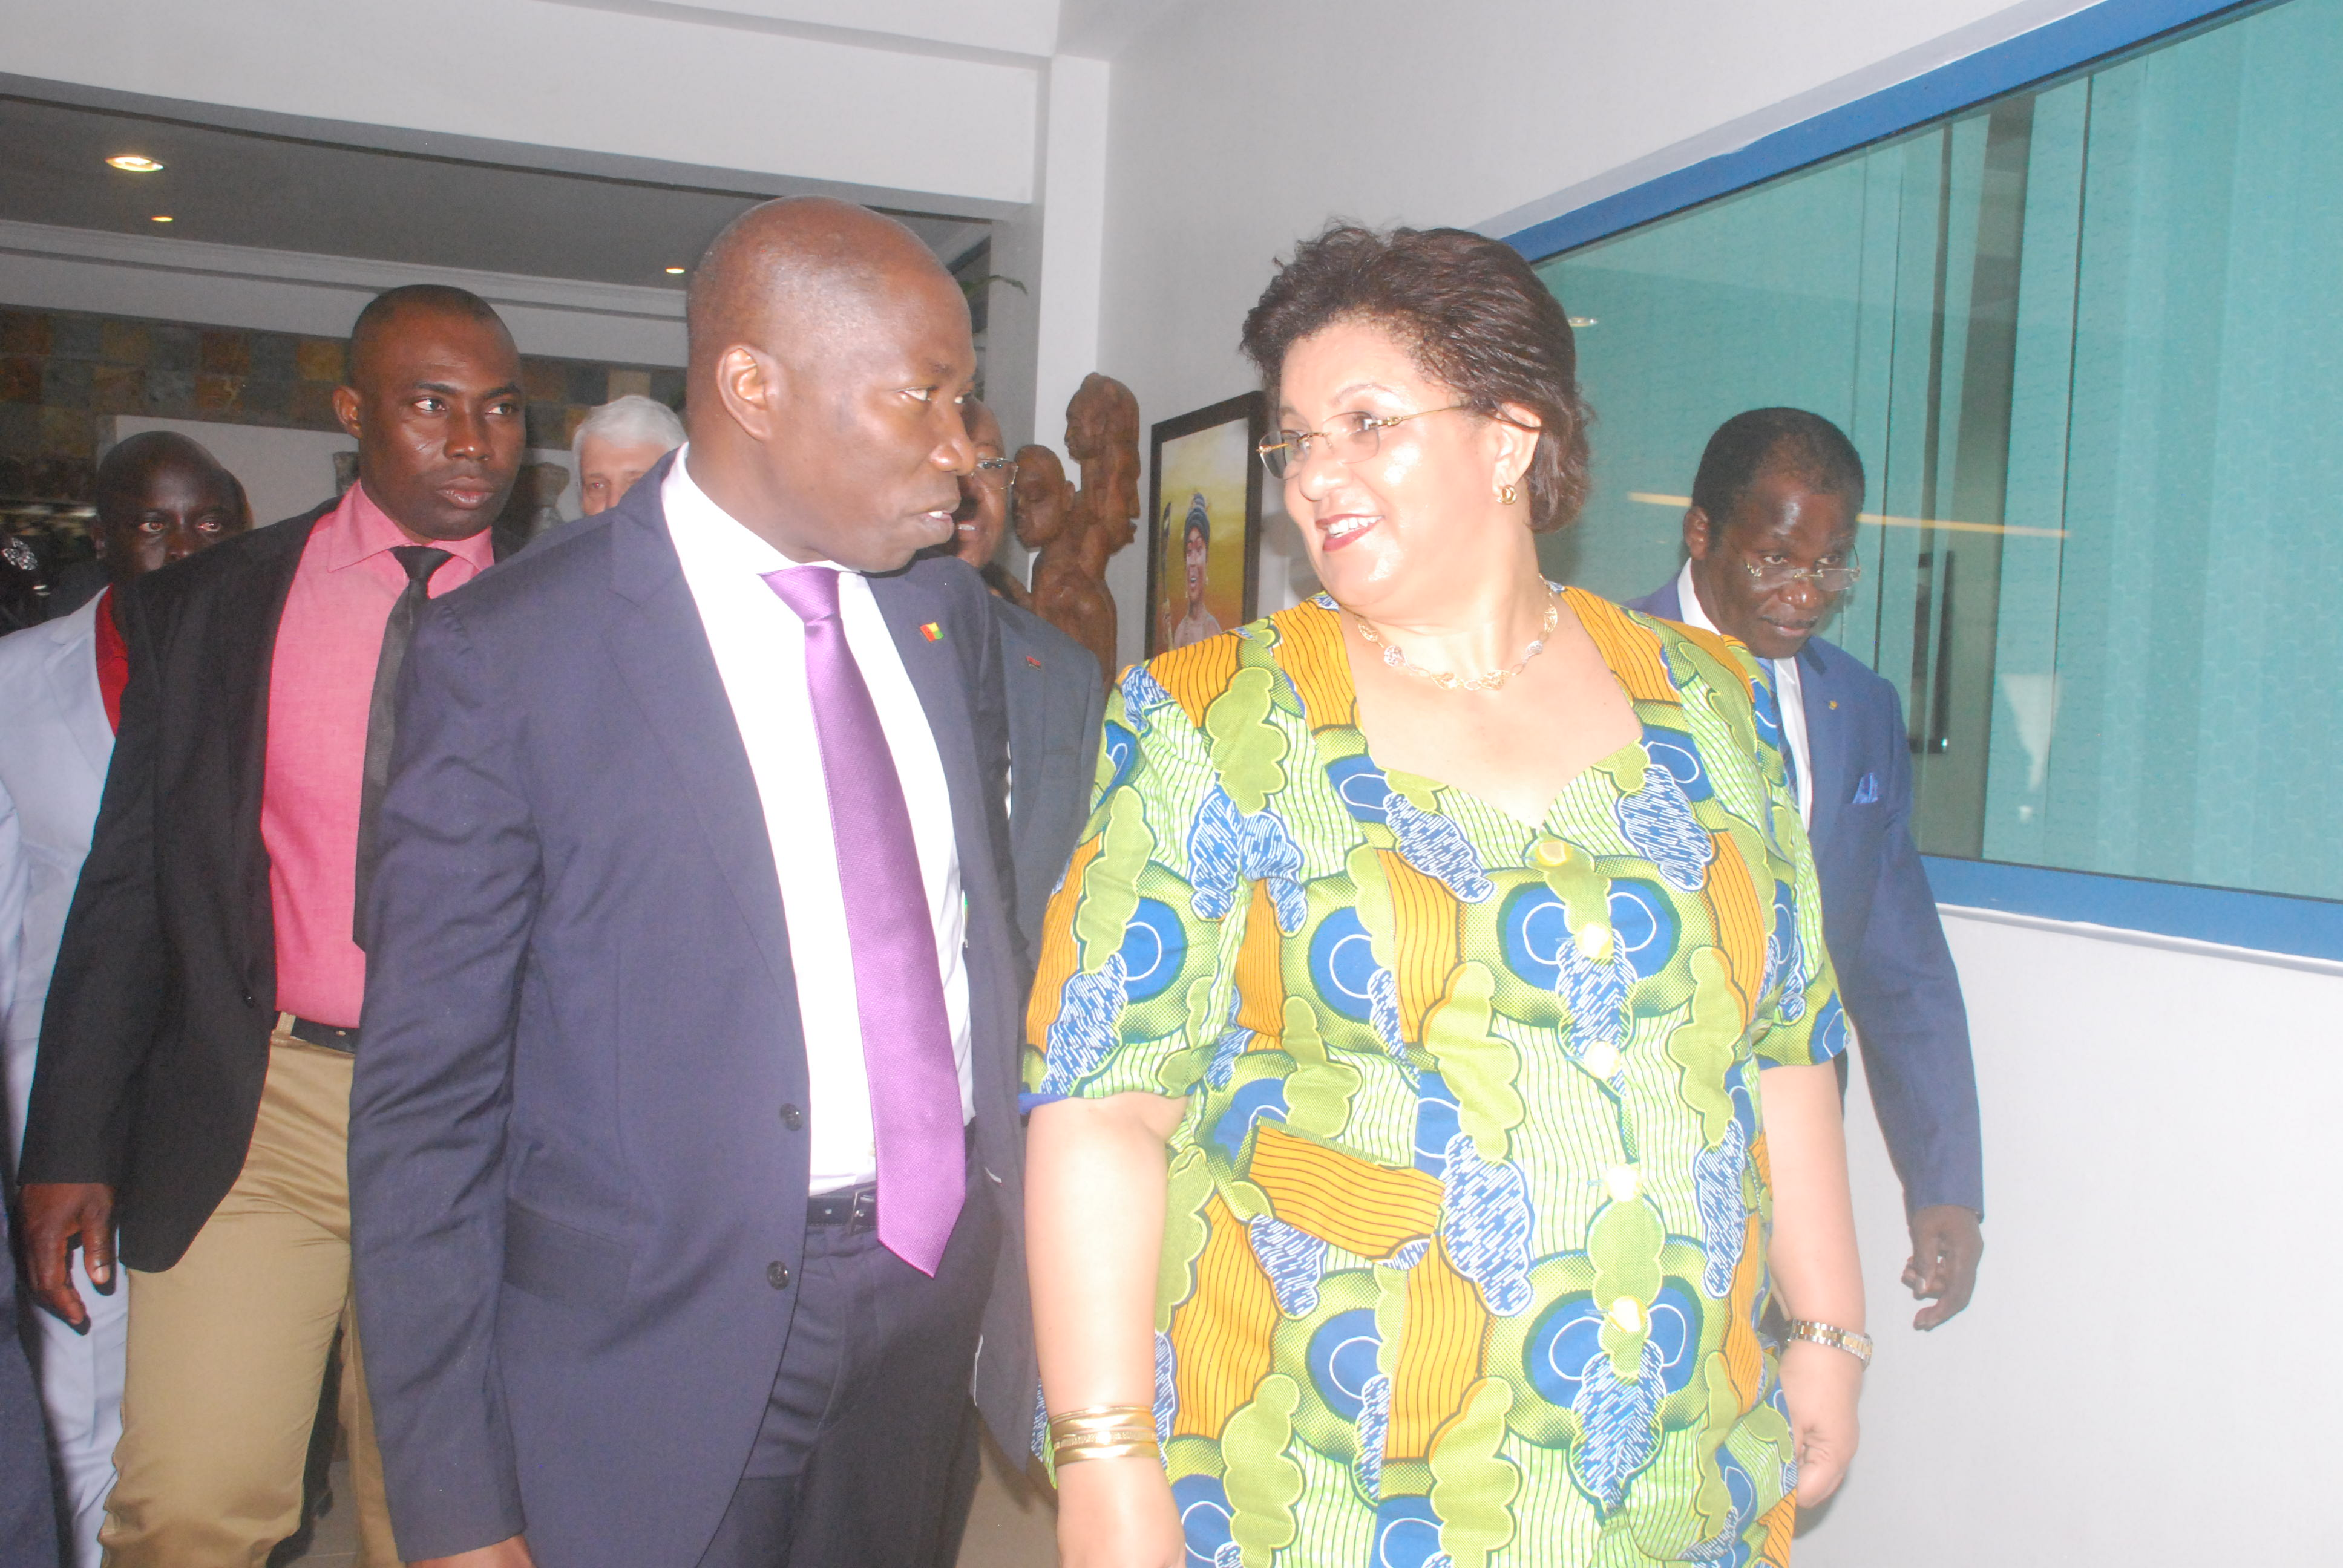 Ms Hannah Serwaah Tetteh (right), Minister of Foreign Affairs and Regional Integration and Mr Domingos Simoes Pereira, Prime Minister of Guinea-Bissau